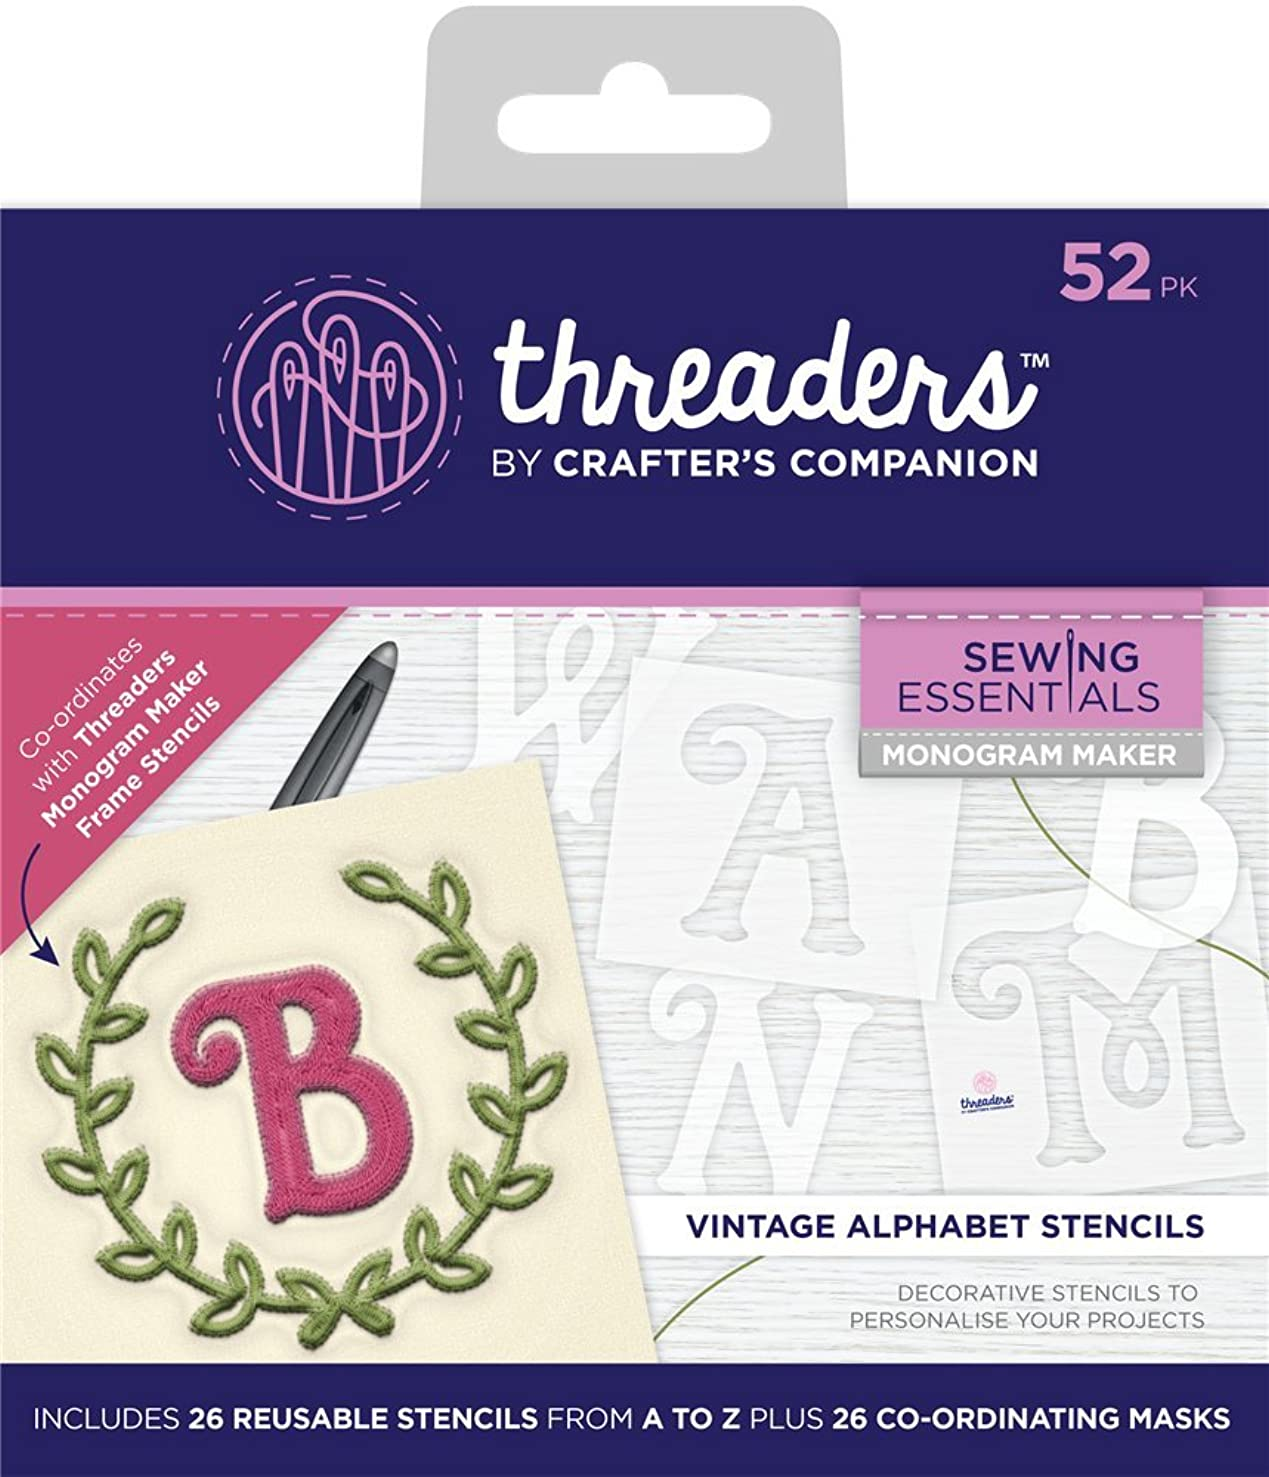 Threaders Vintage Alphabet Templates Monogram Maker, 16 x 14 x 1.3 cm